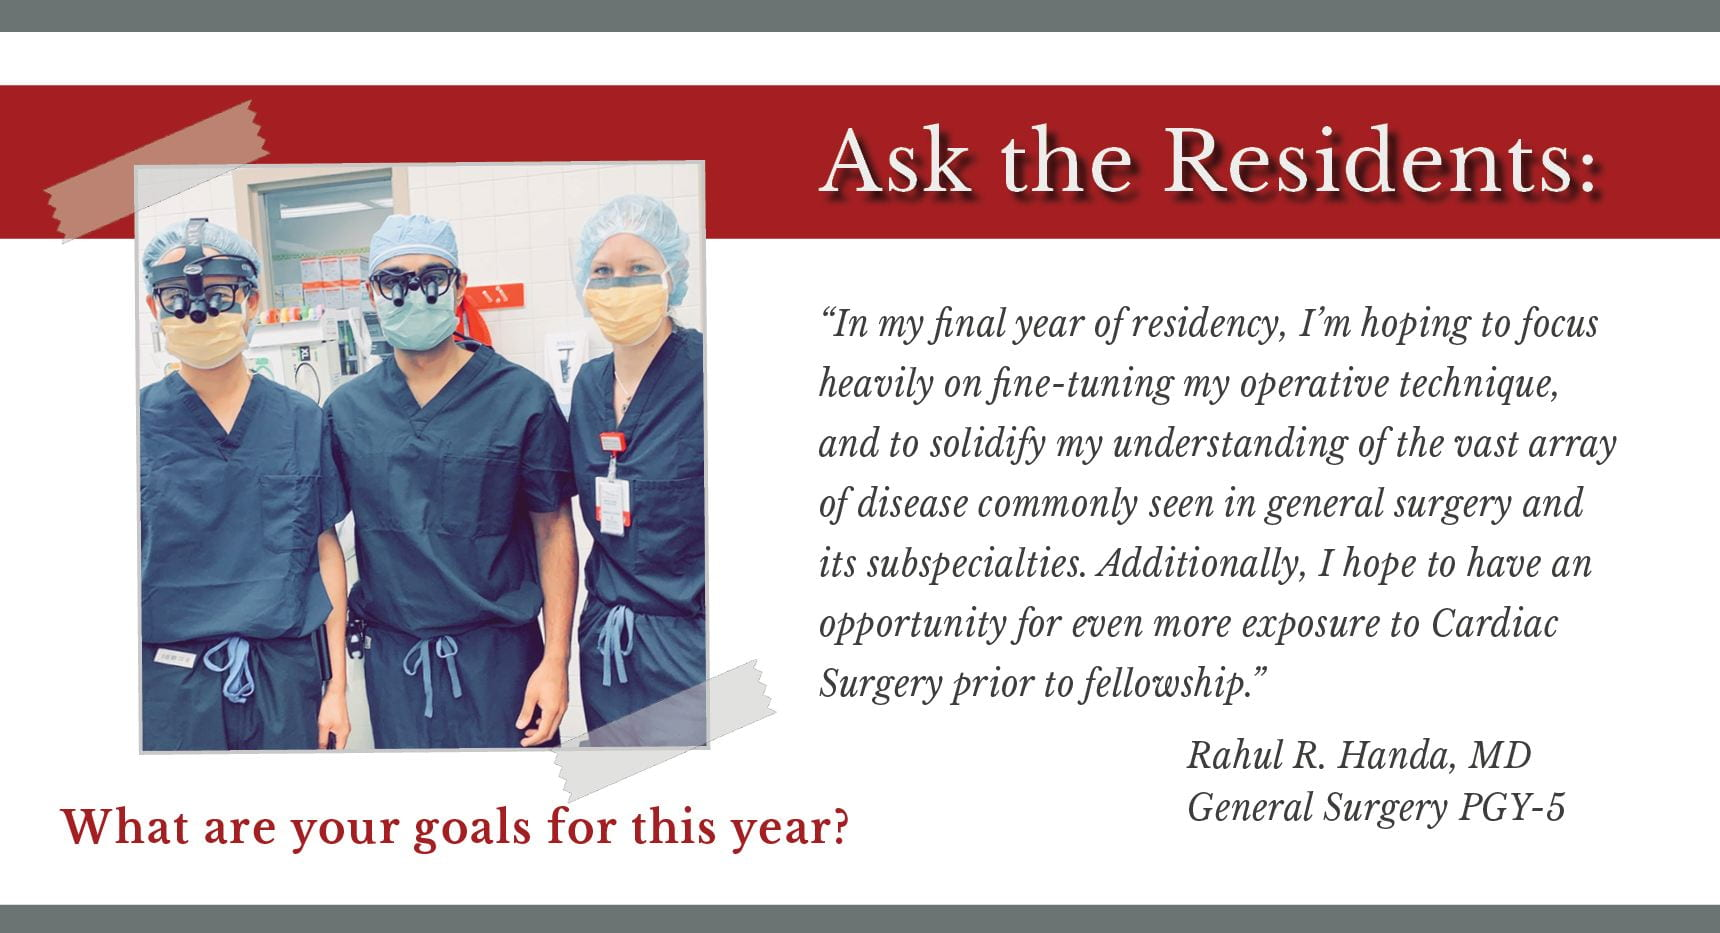 """Handa says, """"In my final year of residency, I'm hoping to focus heavily on fine-tuning my operative technique, and to solidify my understanding of the vast array of disease commonly seen in general surgery and its subspecialties. Additionally, I hope to have an opportunity for even more exposure to Cardiac Surgery prior to fellowship."""""""